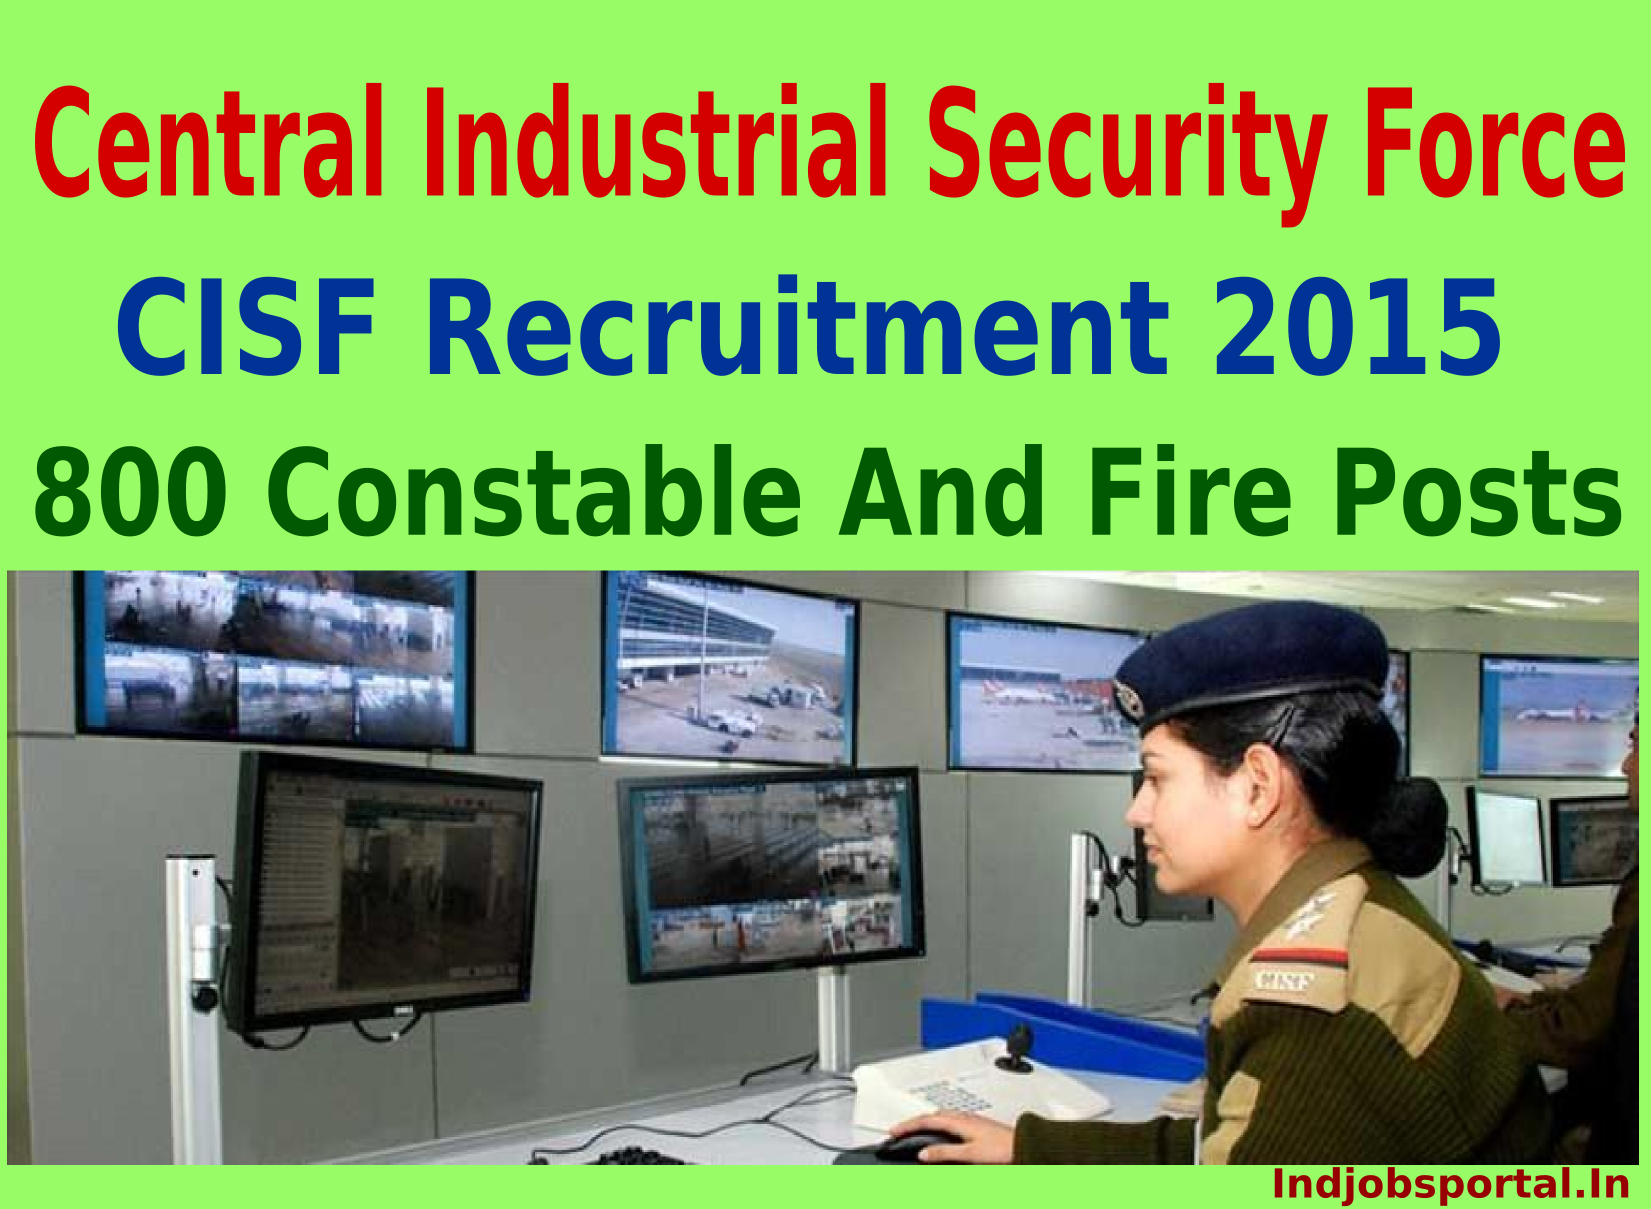 CISF Recruitment 2015 For 800 Constable And Fire Posts